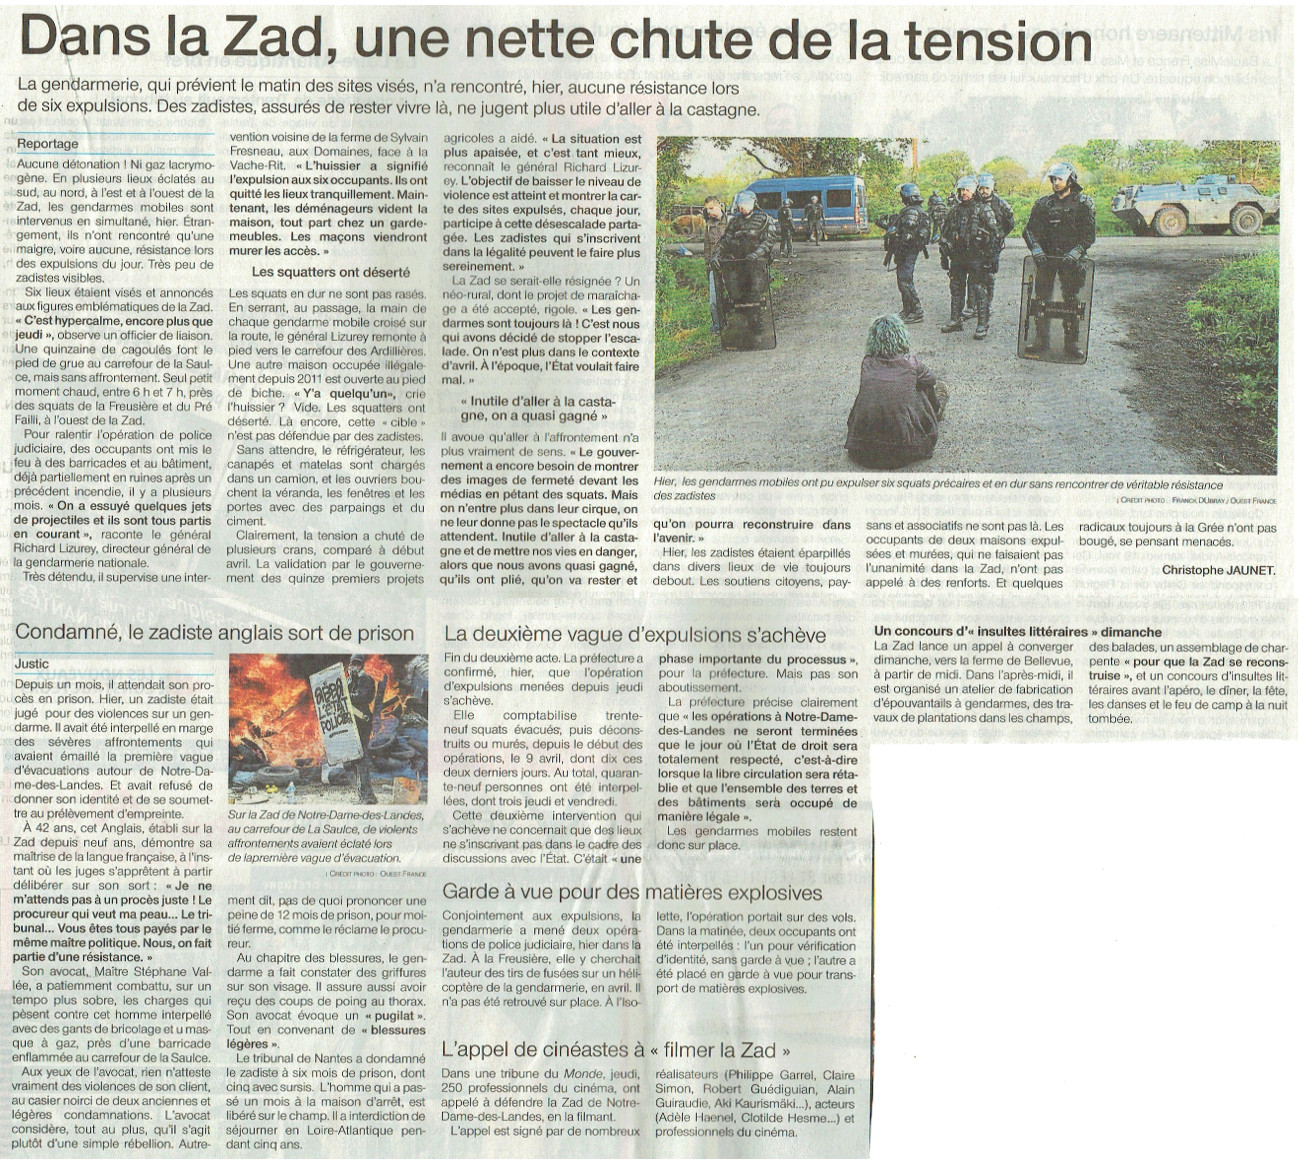 article de presse sur les sites de rencontres